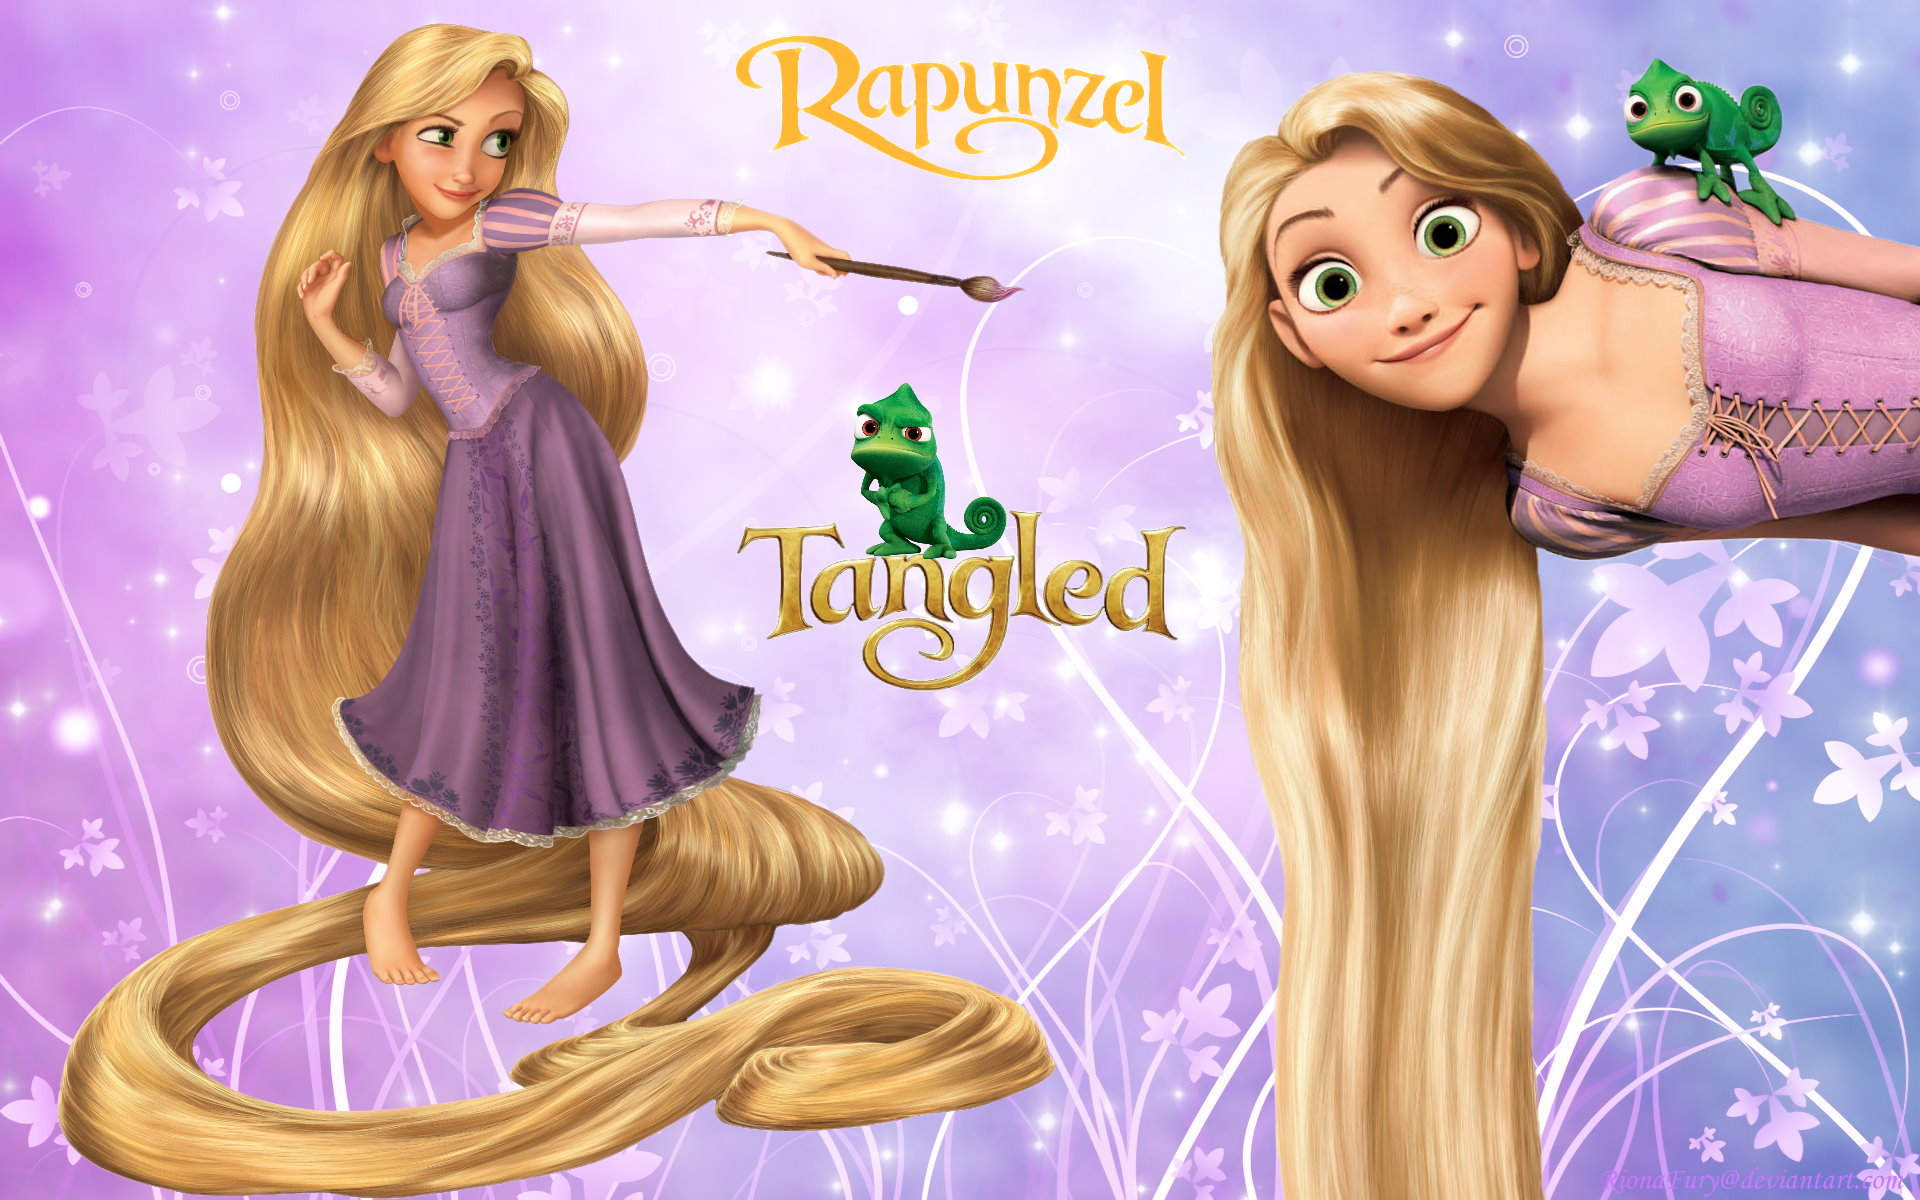 Tangled Disney Princess Rapunzel